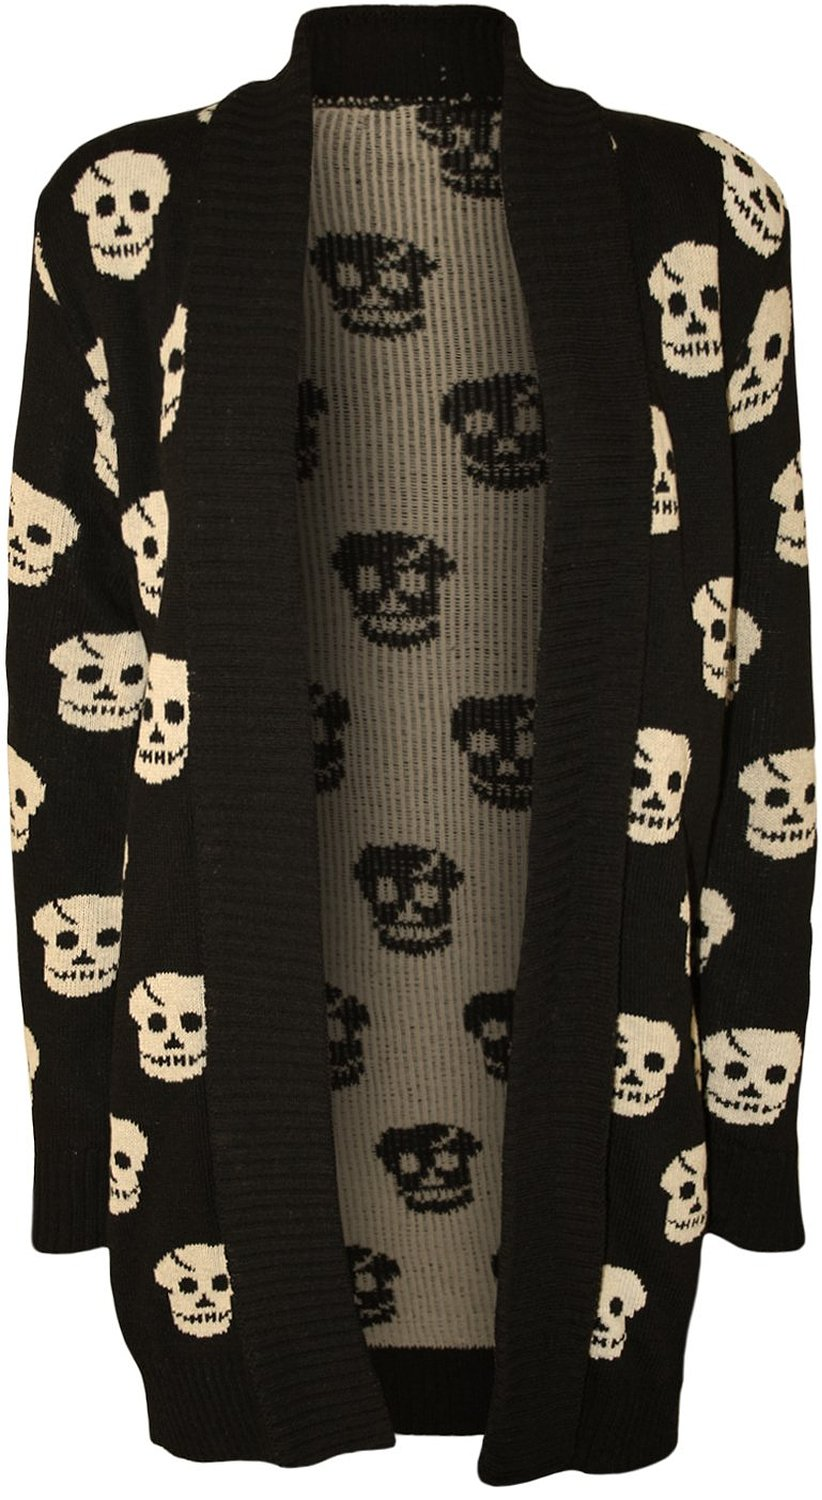 PaperMoon Women's Knit Skull Pattern Open Cardigan at Amazon Women's Clothing store: Cardigan Sweaters